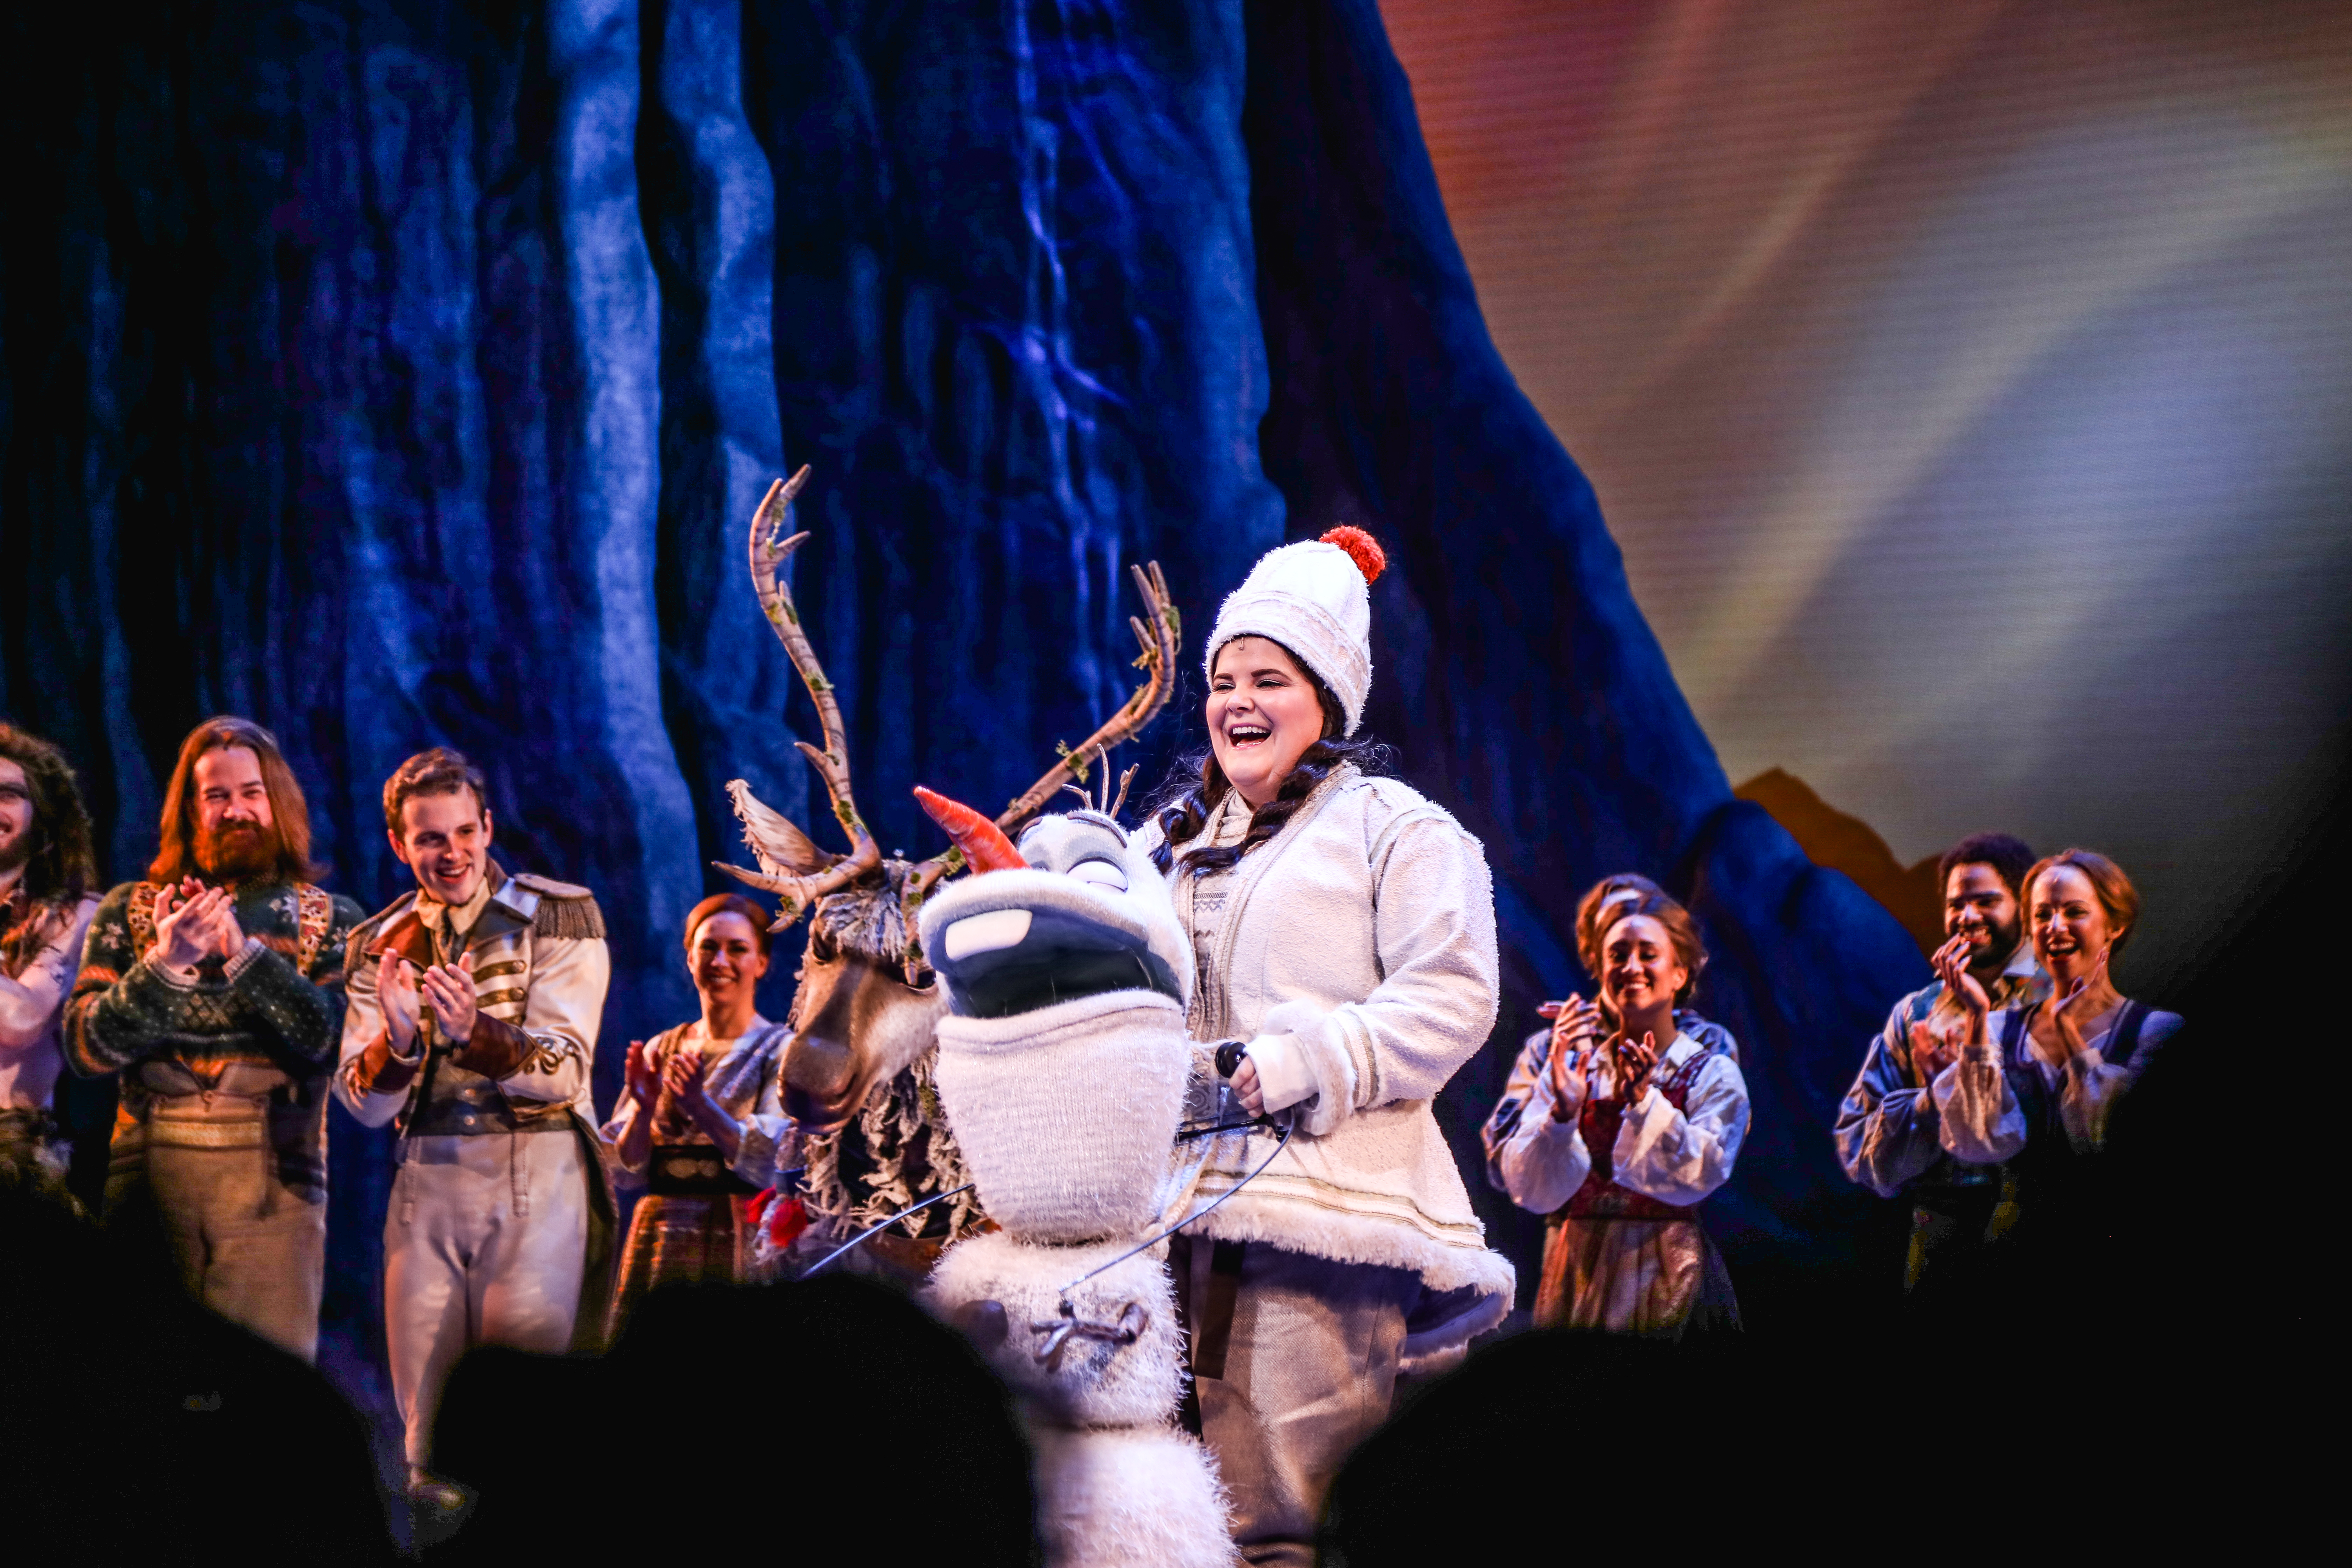 Stars From Frozen Aladdin The Lion King Set For July 25 Broadway In Bryant Park Playbill